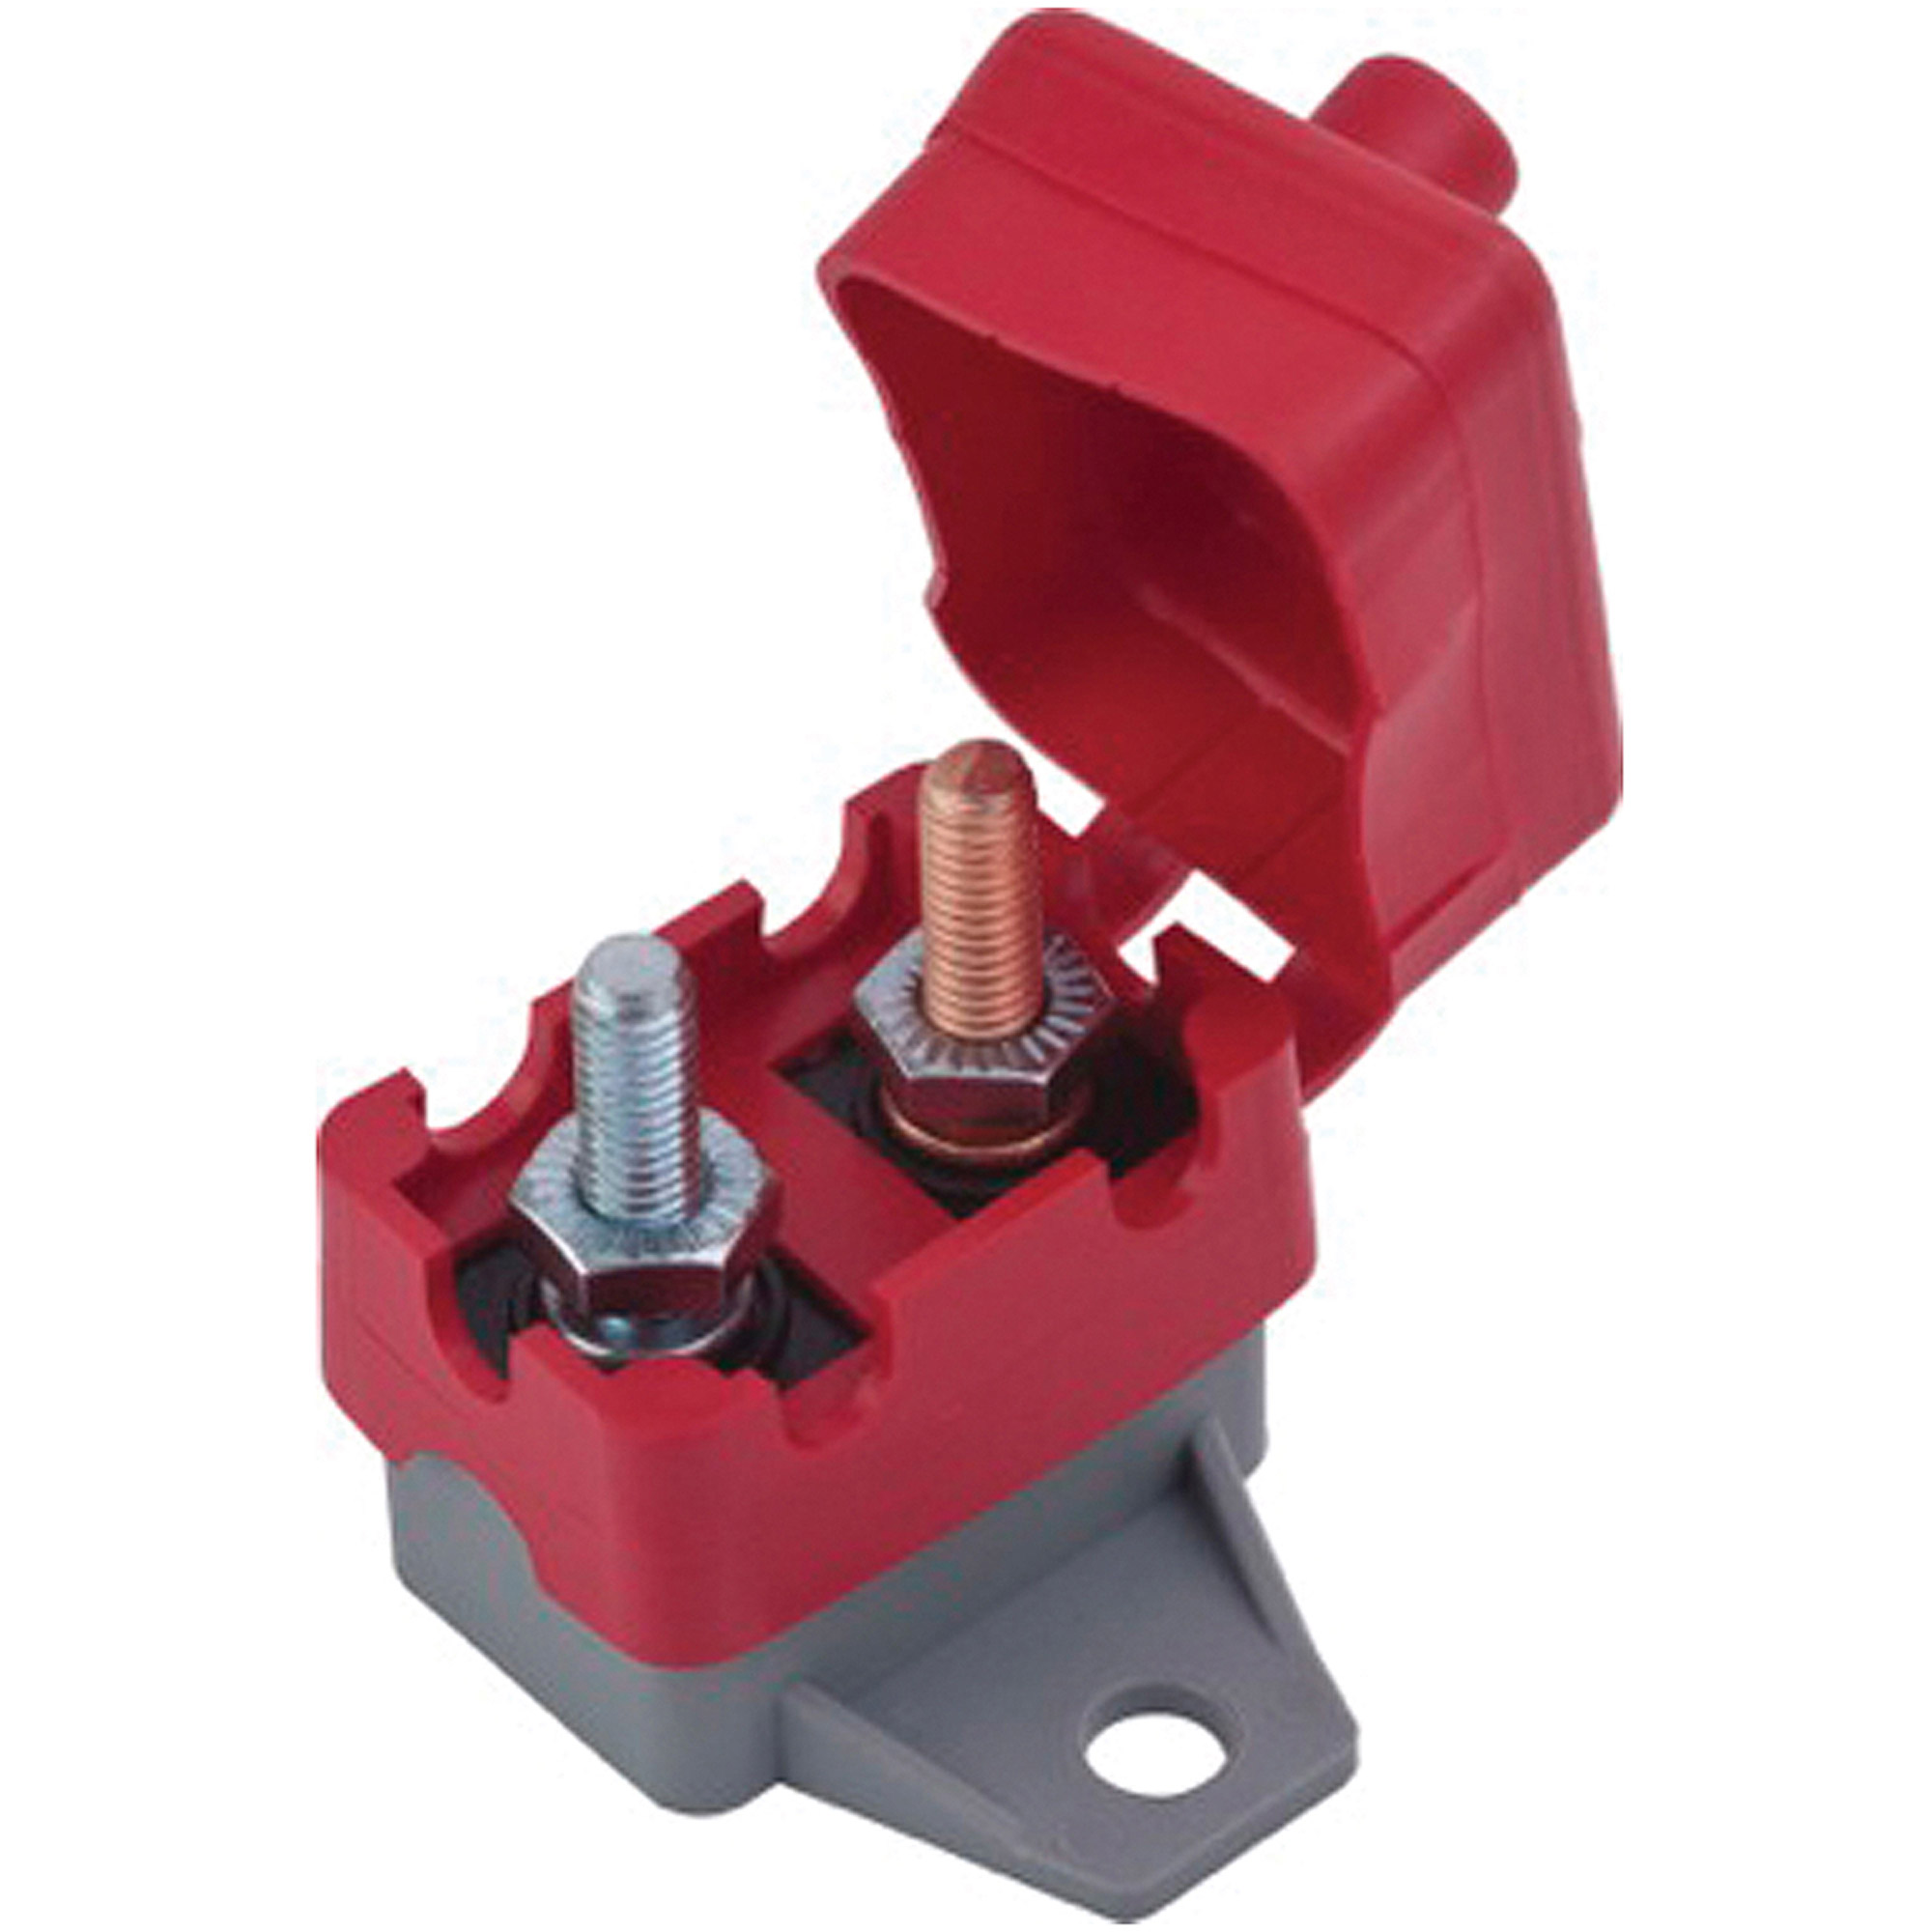 Sea Dog Resettable Circuit Breaker Without Cover 50 Amp